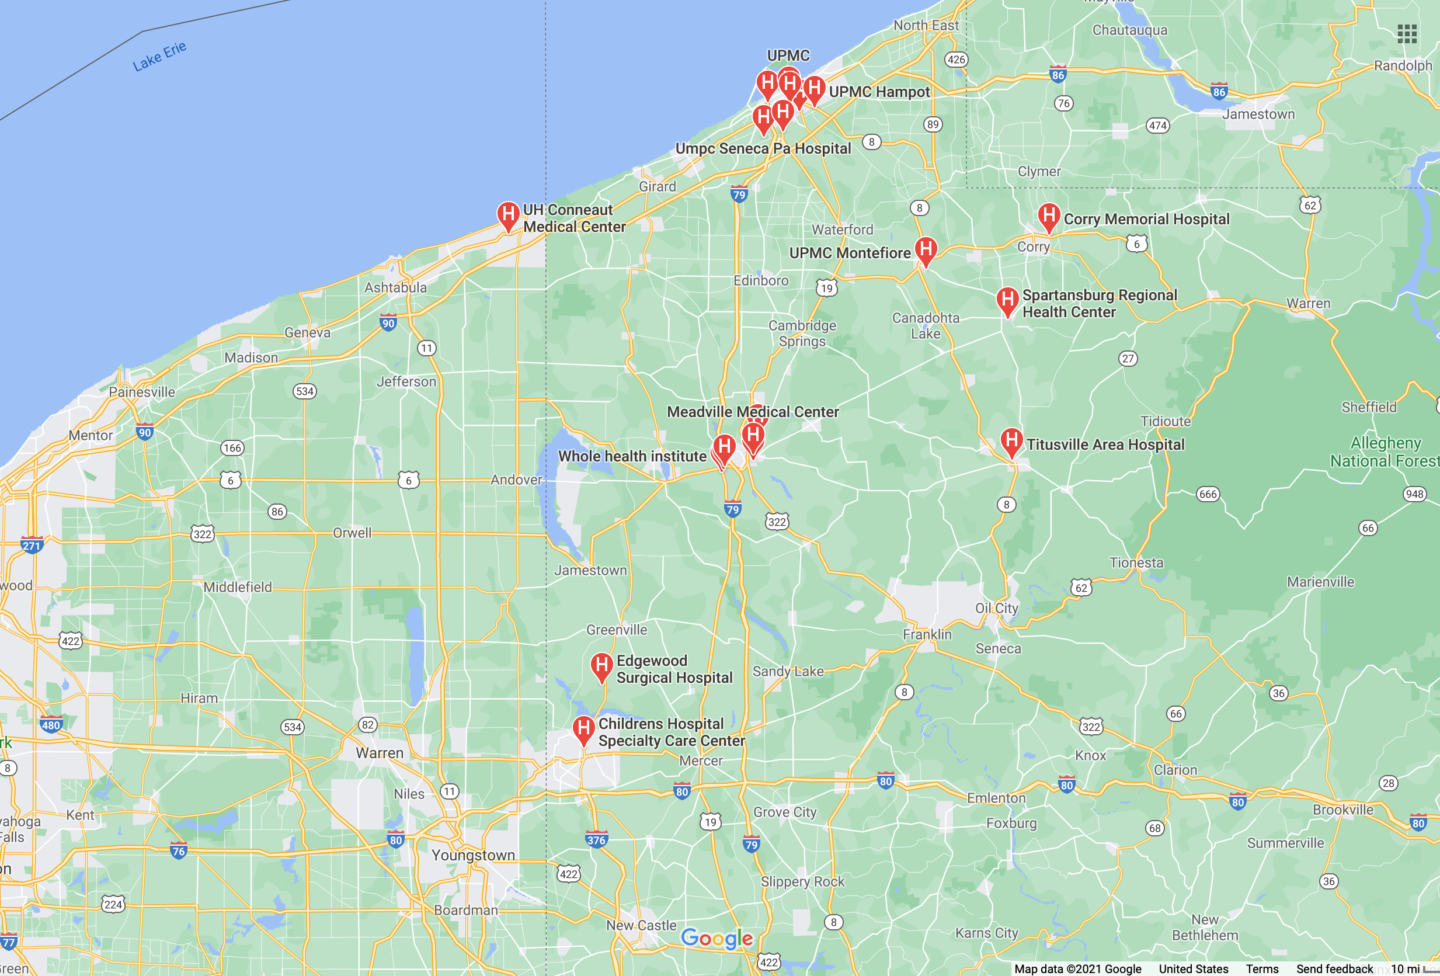 google-map-with-hospitals